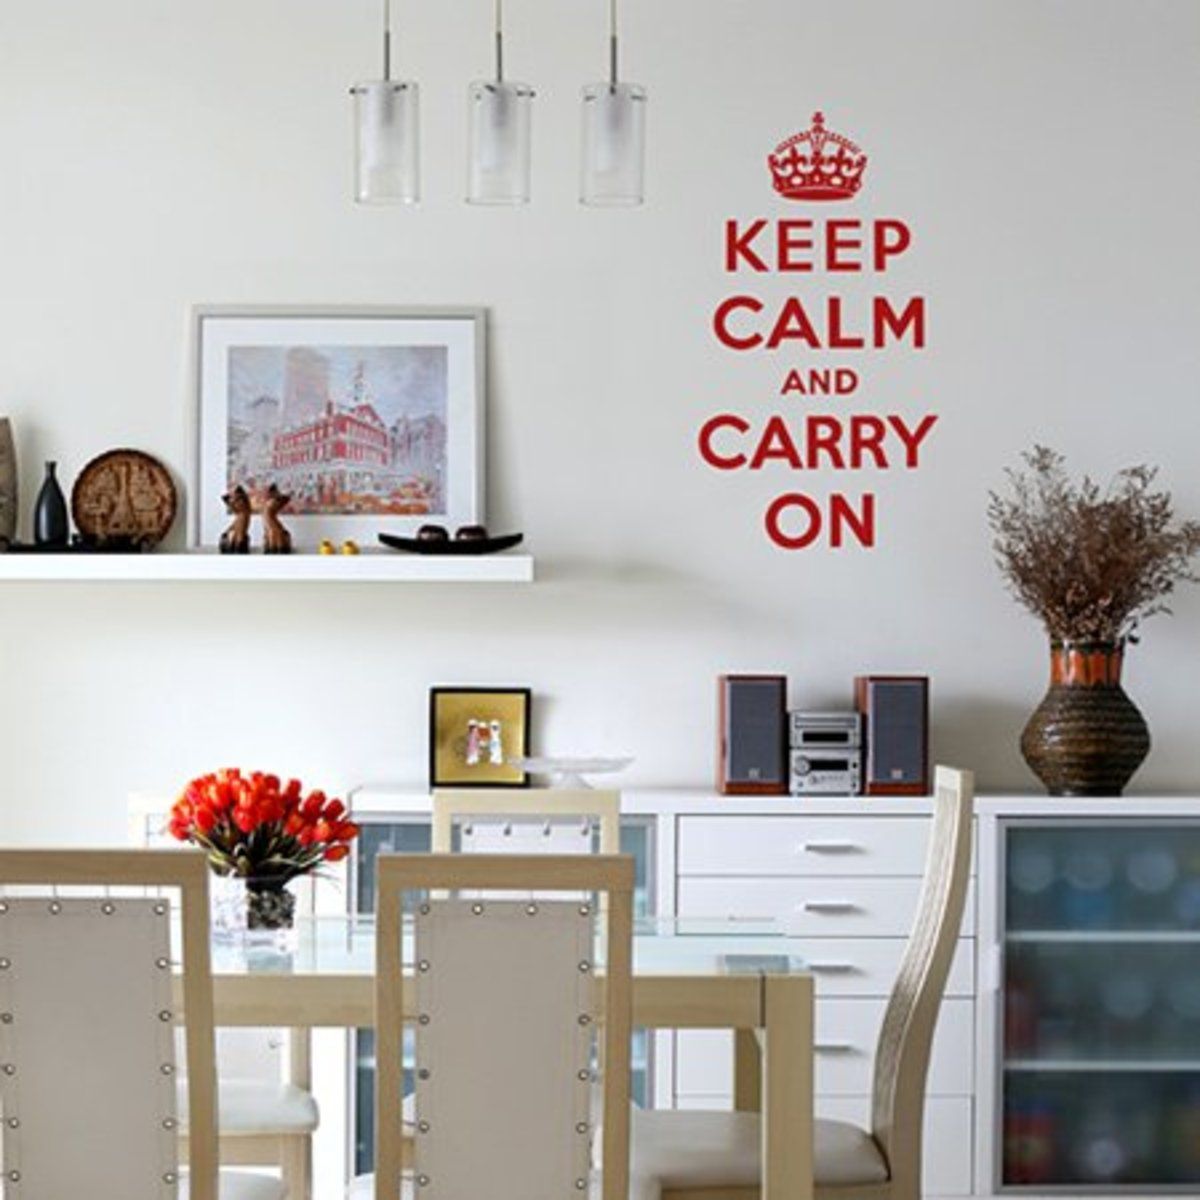 How to Remove Wall Stickers and Decals